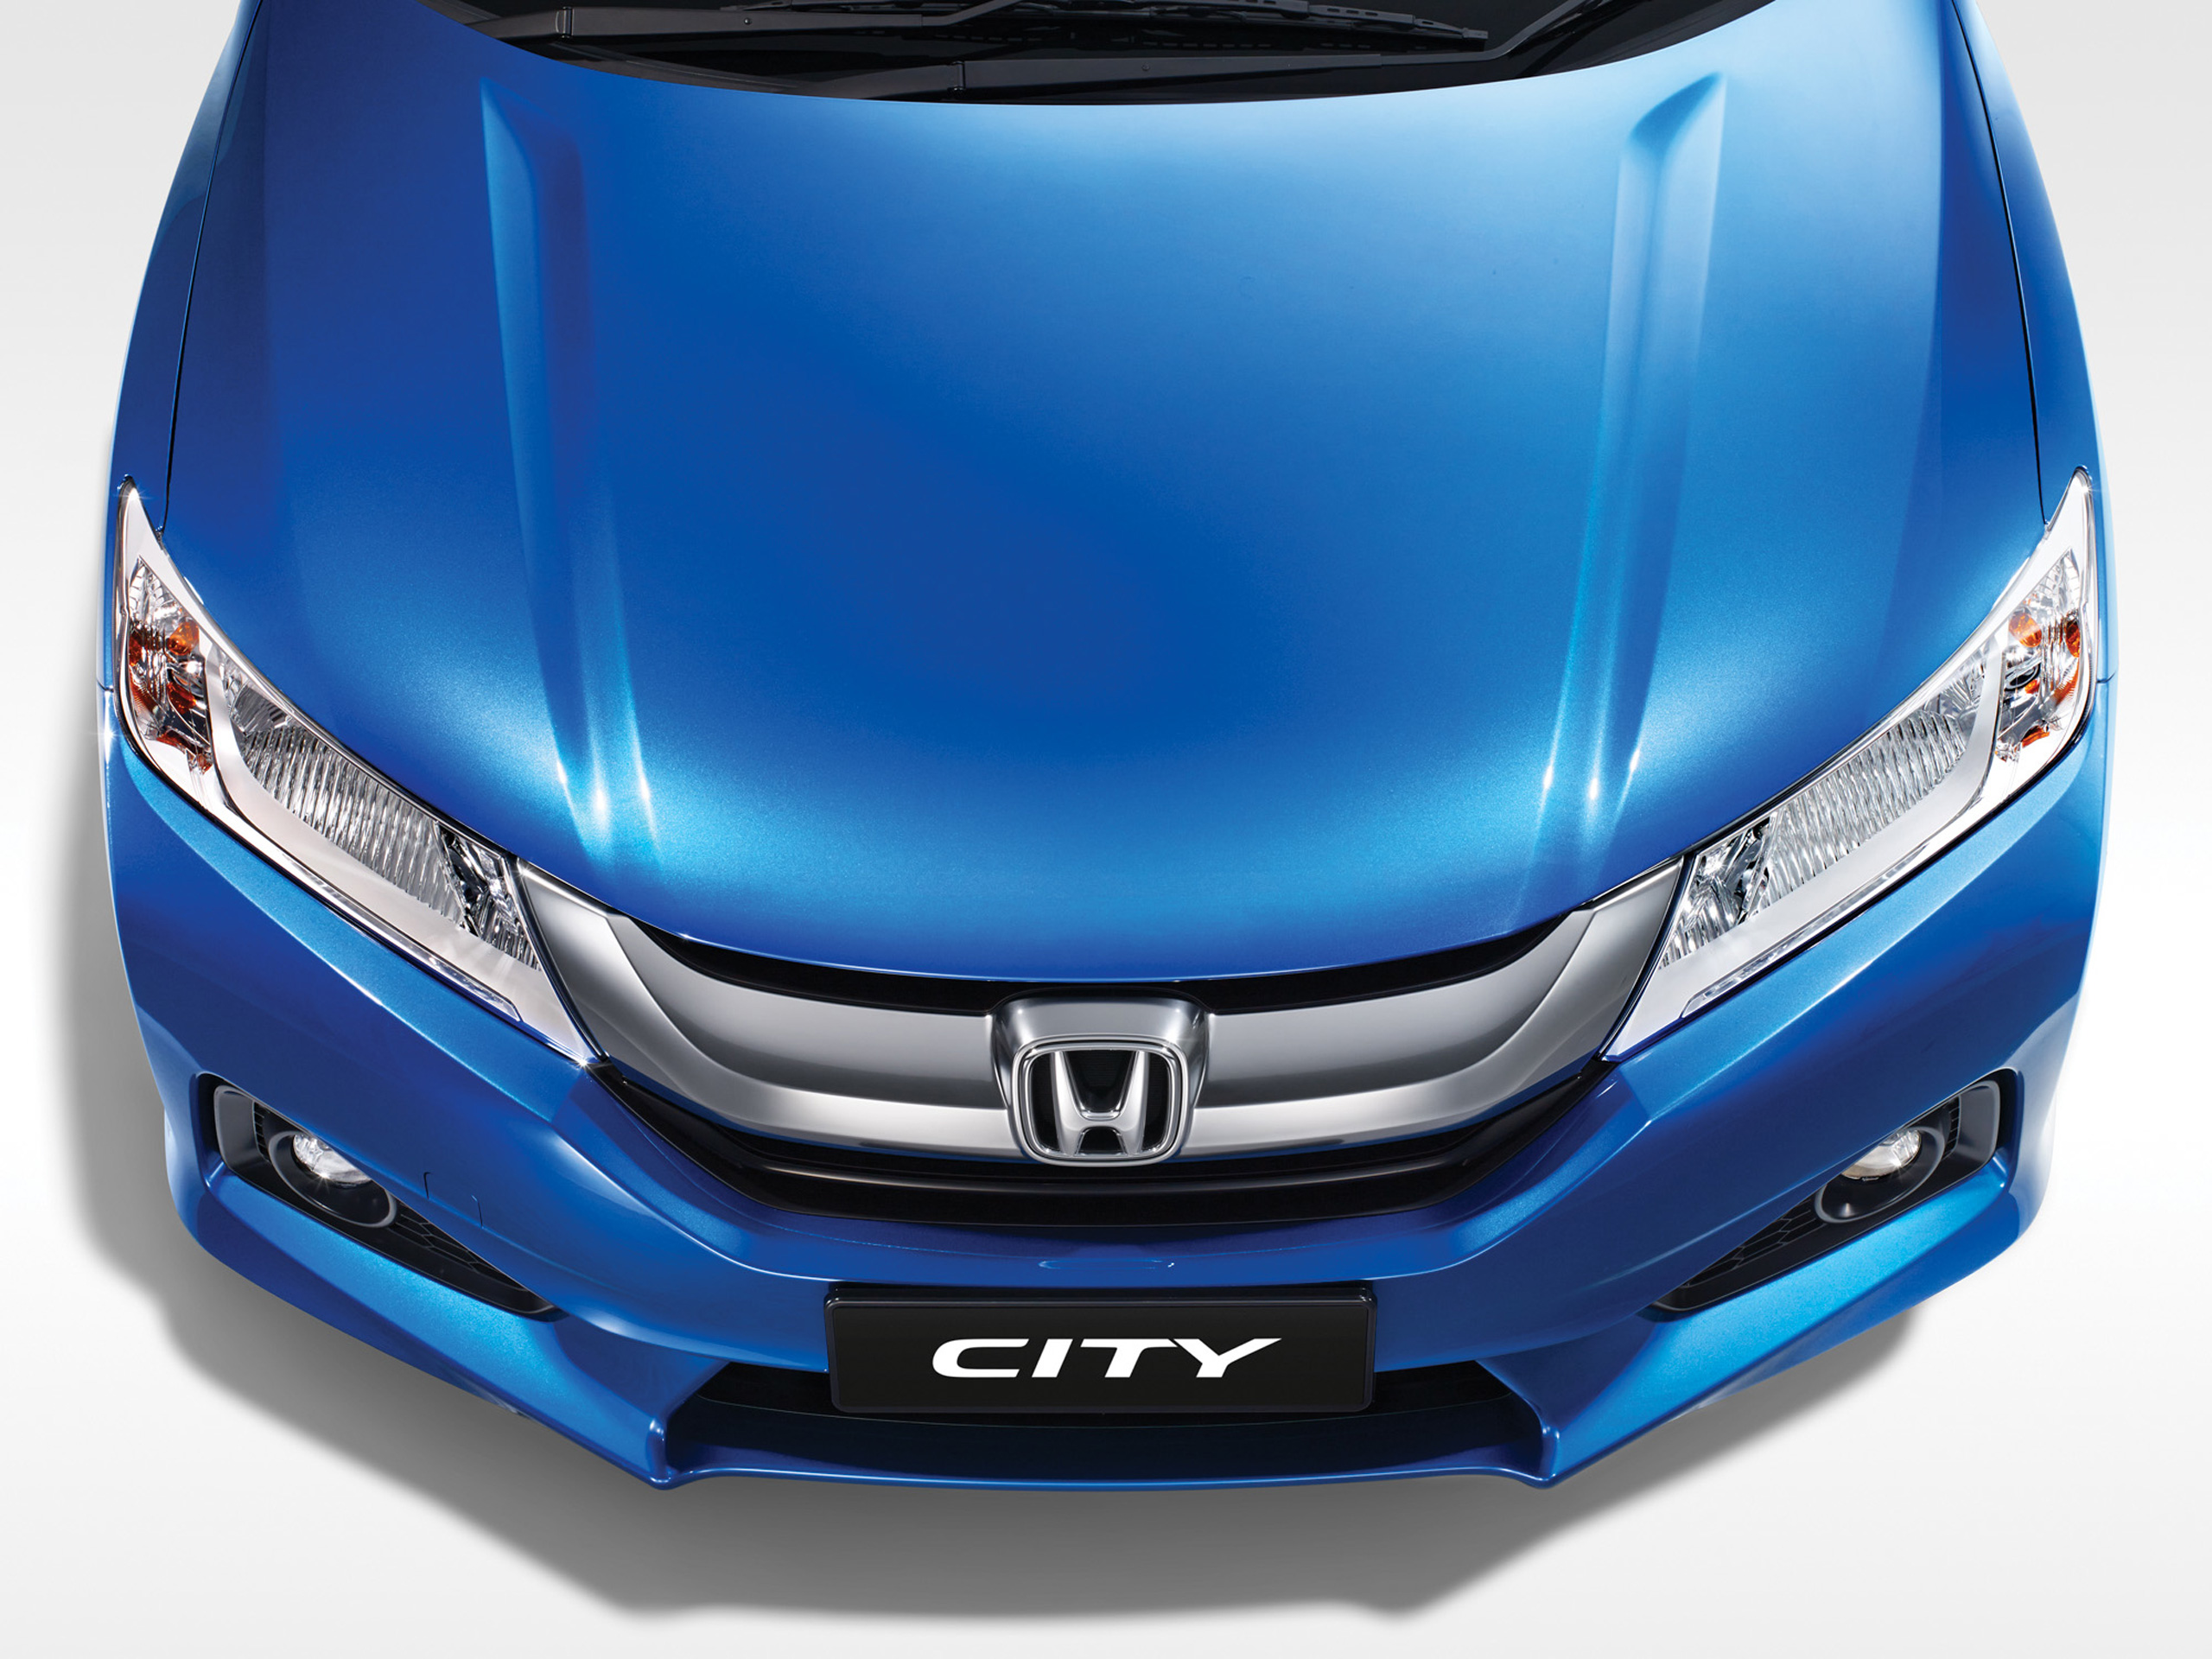 2014 Honda City launched in Malaysia, from RM76k Image 236299